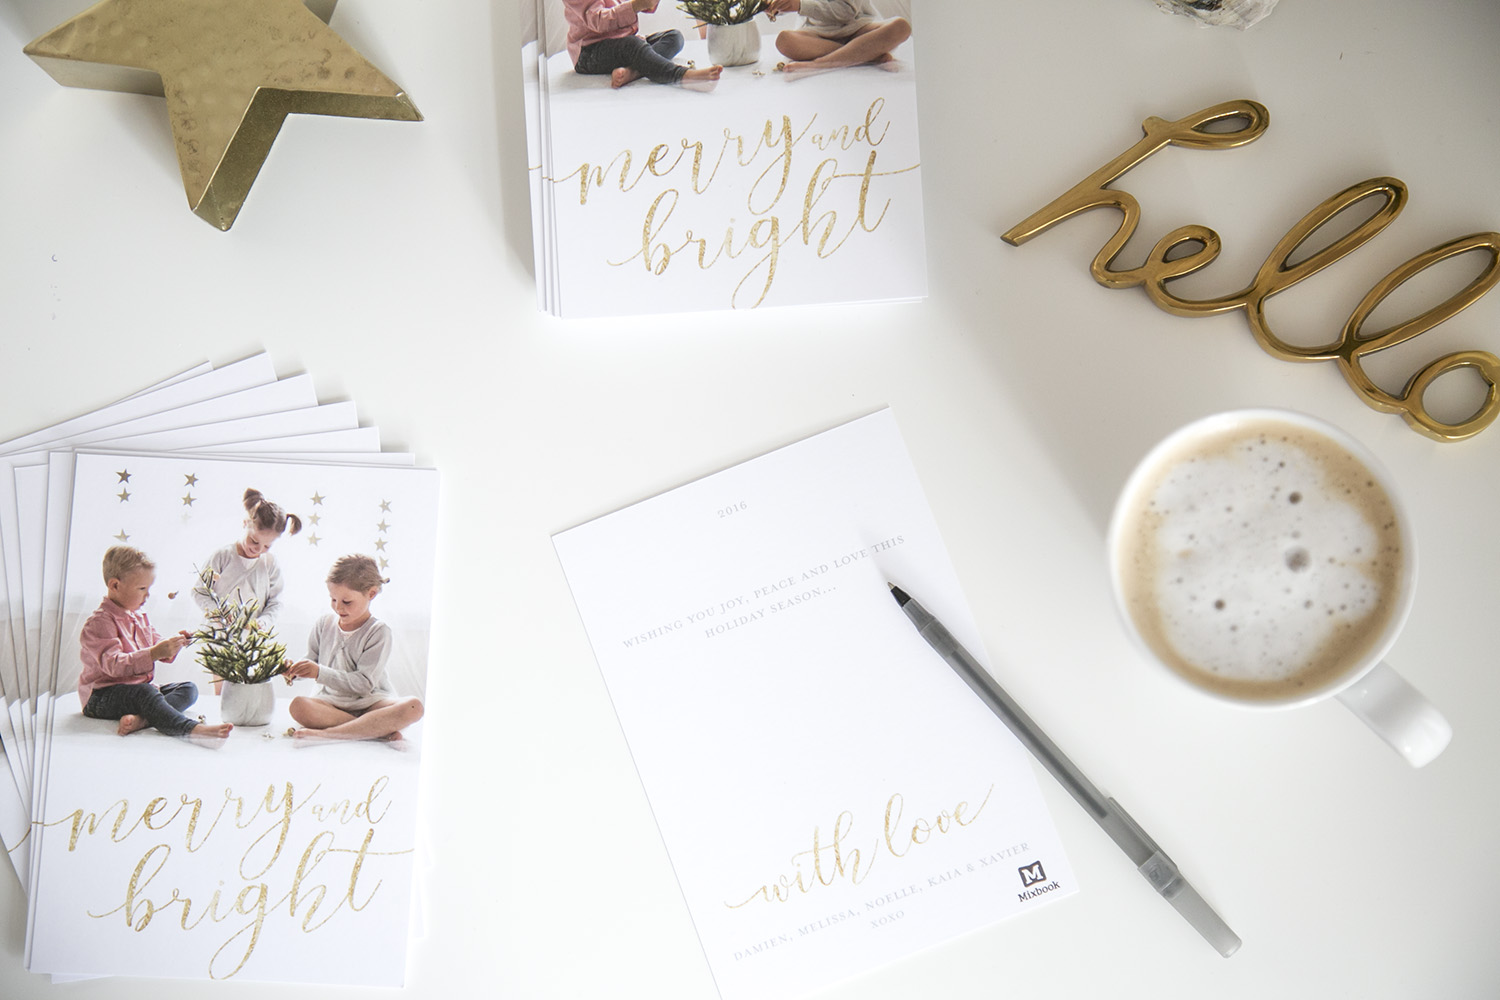 WINTER DAISY blog christmas cards with mixbook